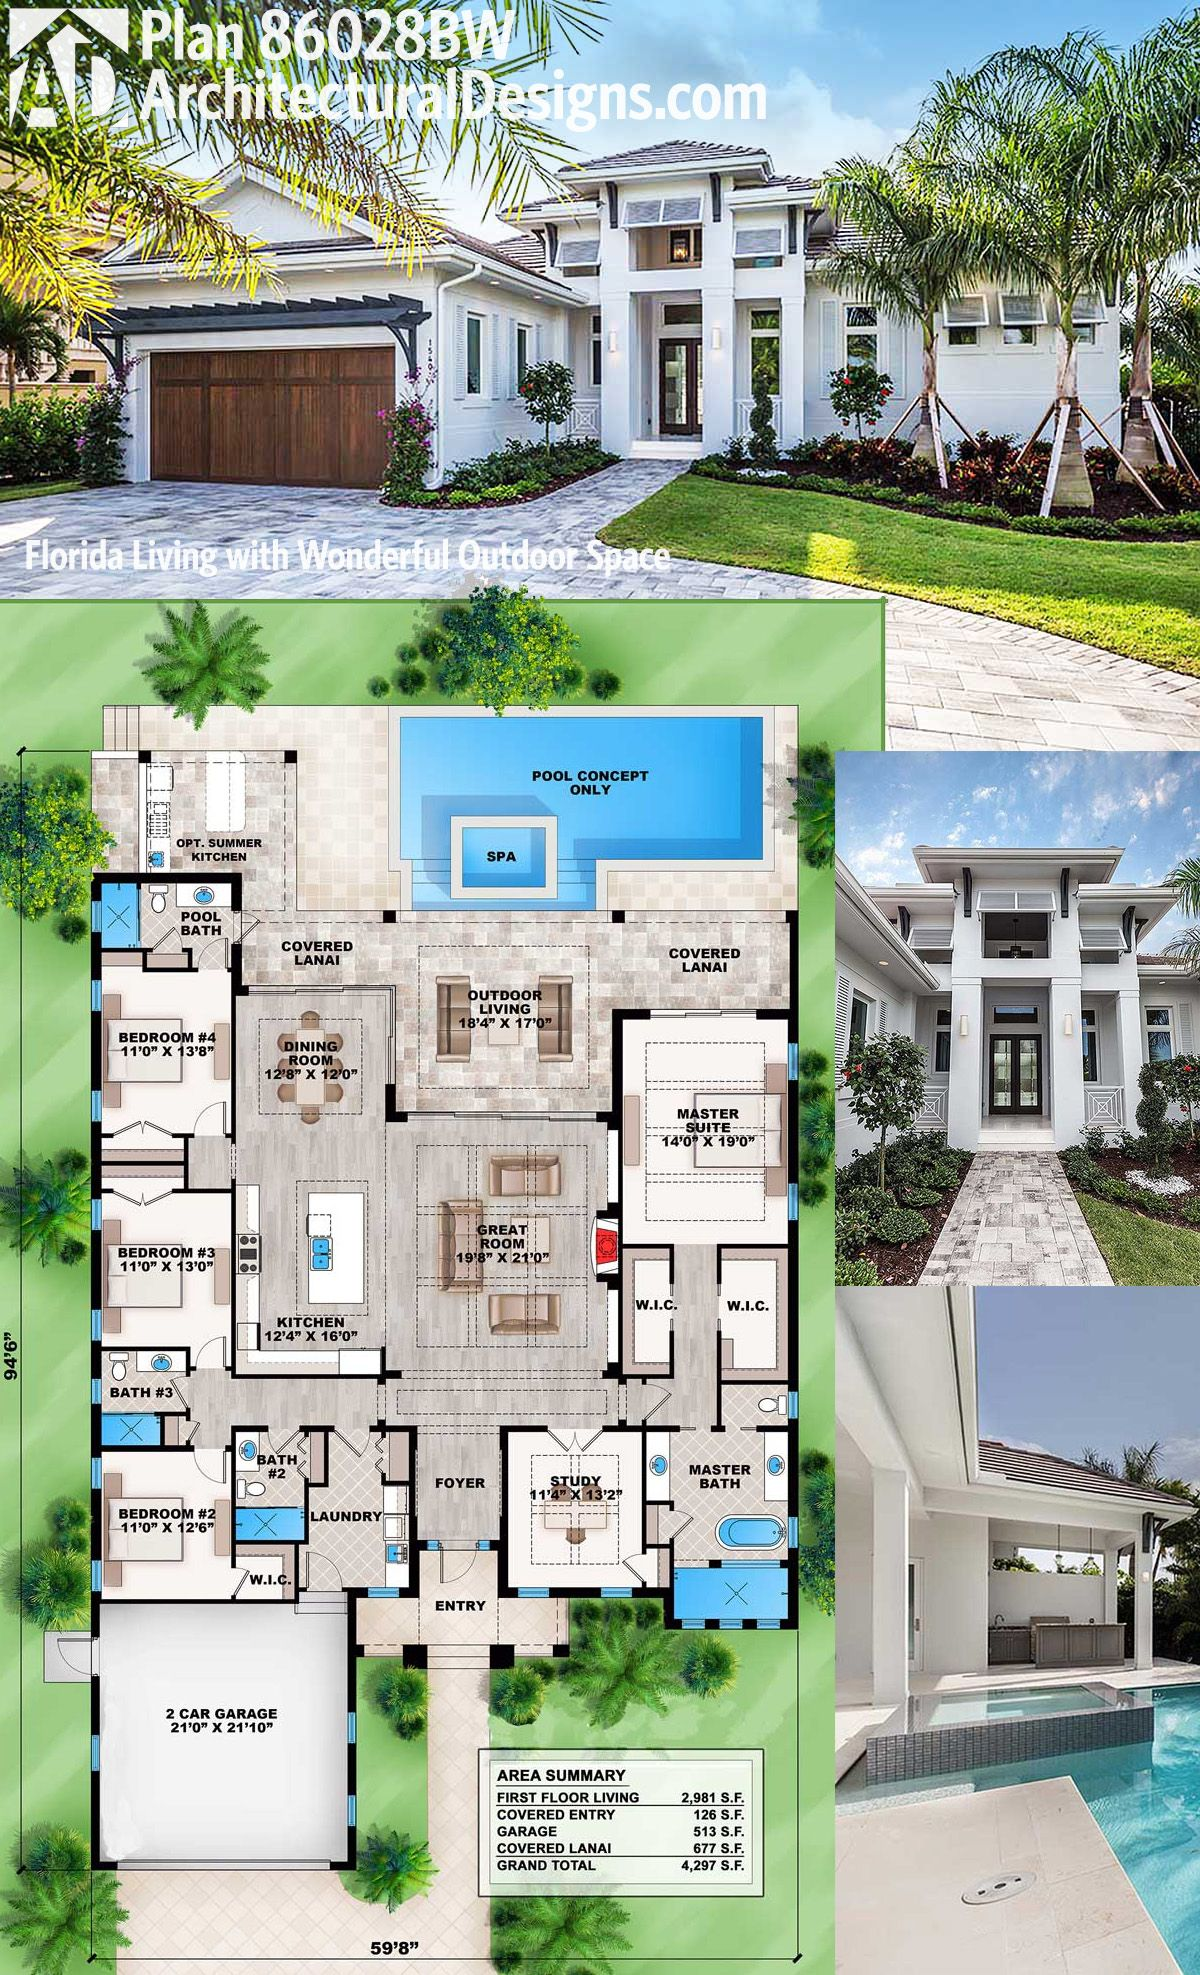 Best 25+ Sims 4 house plans ideas on Pinterest | Sims 3 ...